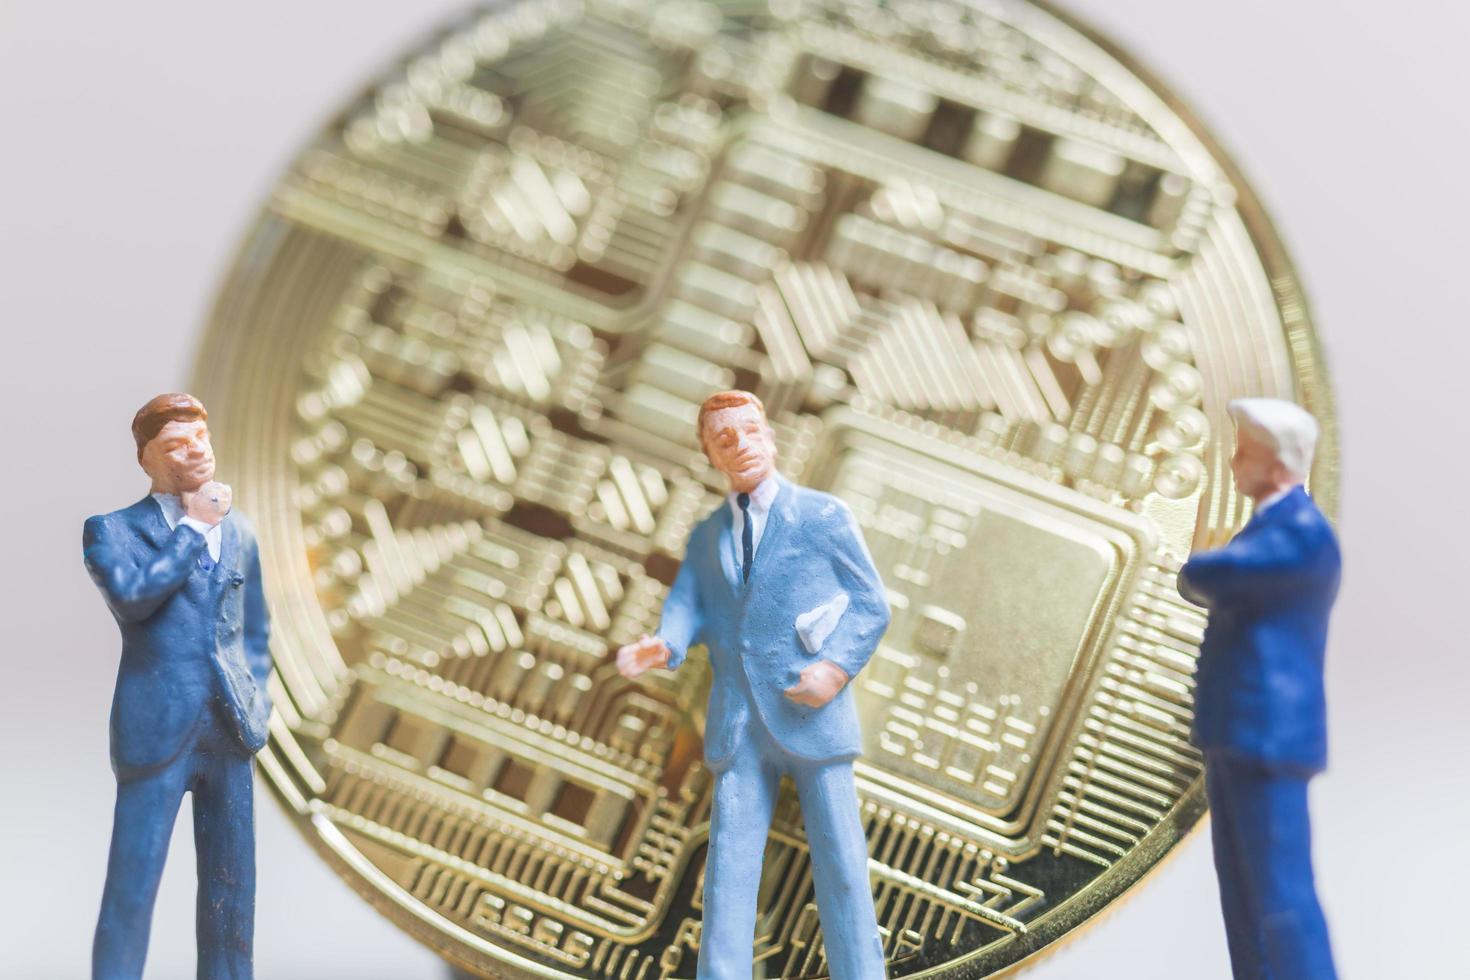 Miniature businessmen standing in front of a Bitcoin cryptocurrency coin, business concept photo